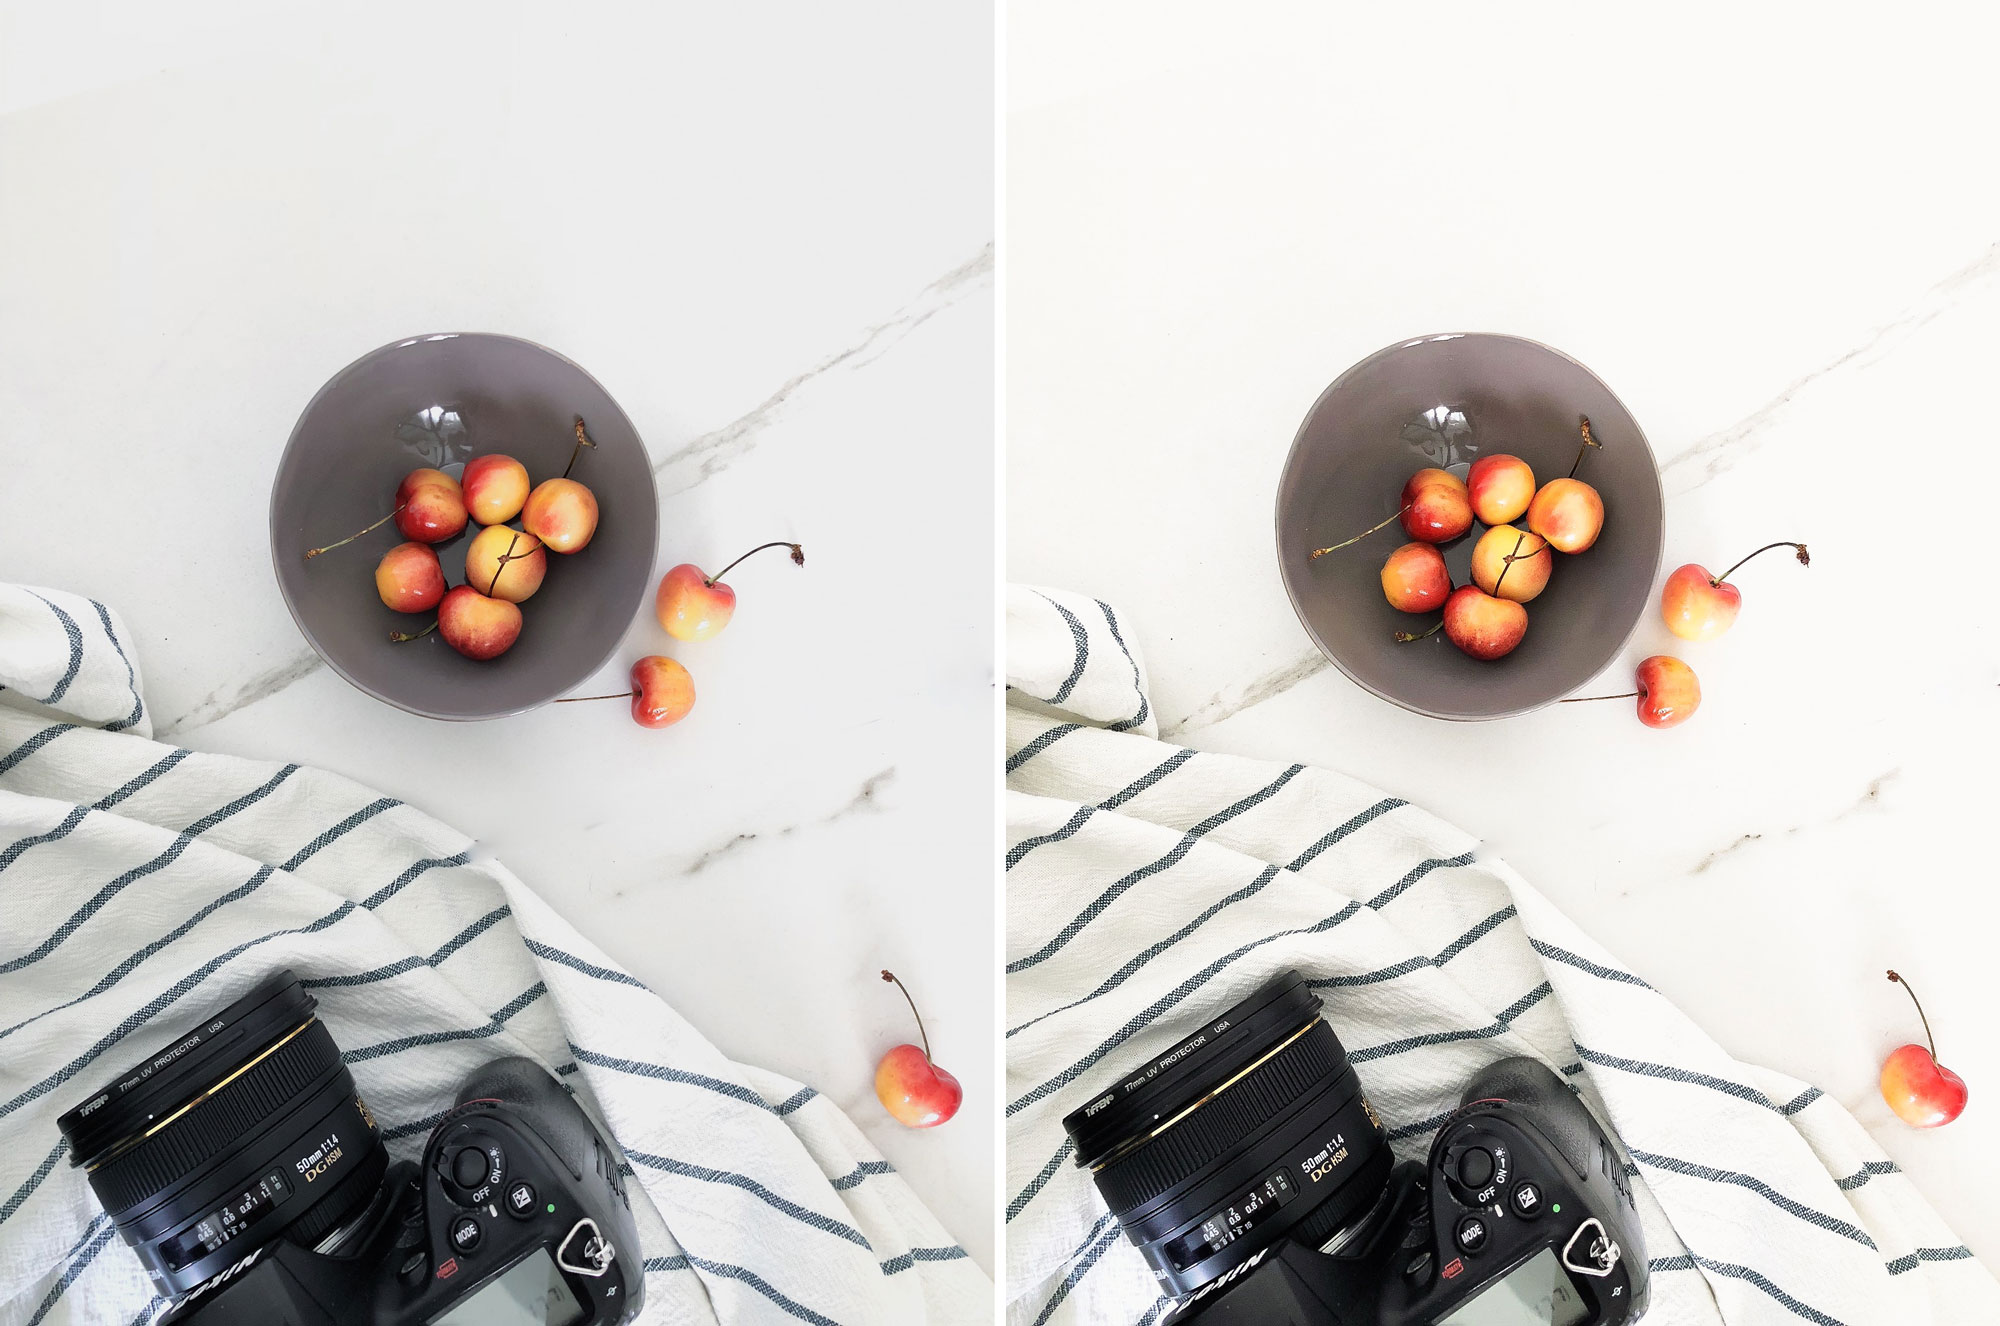 fruits-before-and-after.jpg